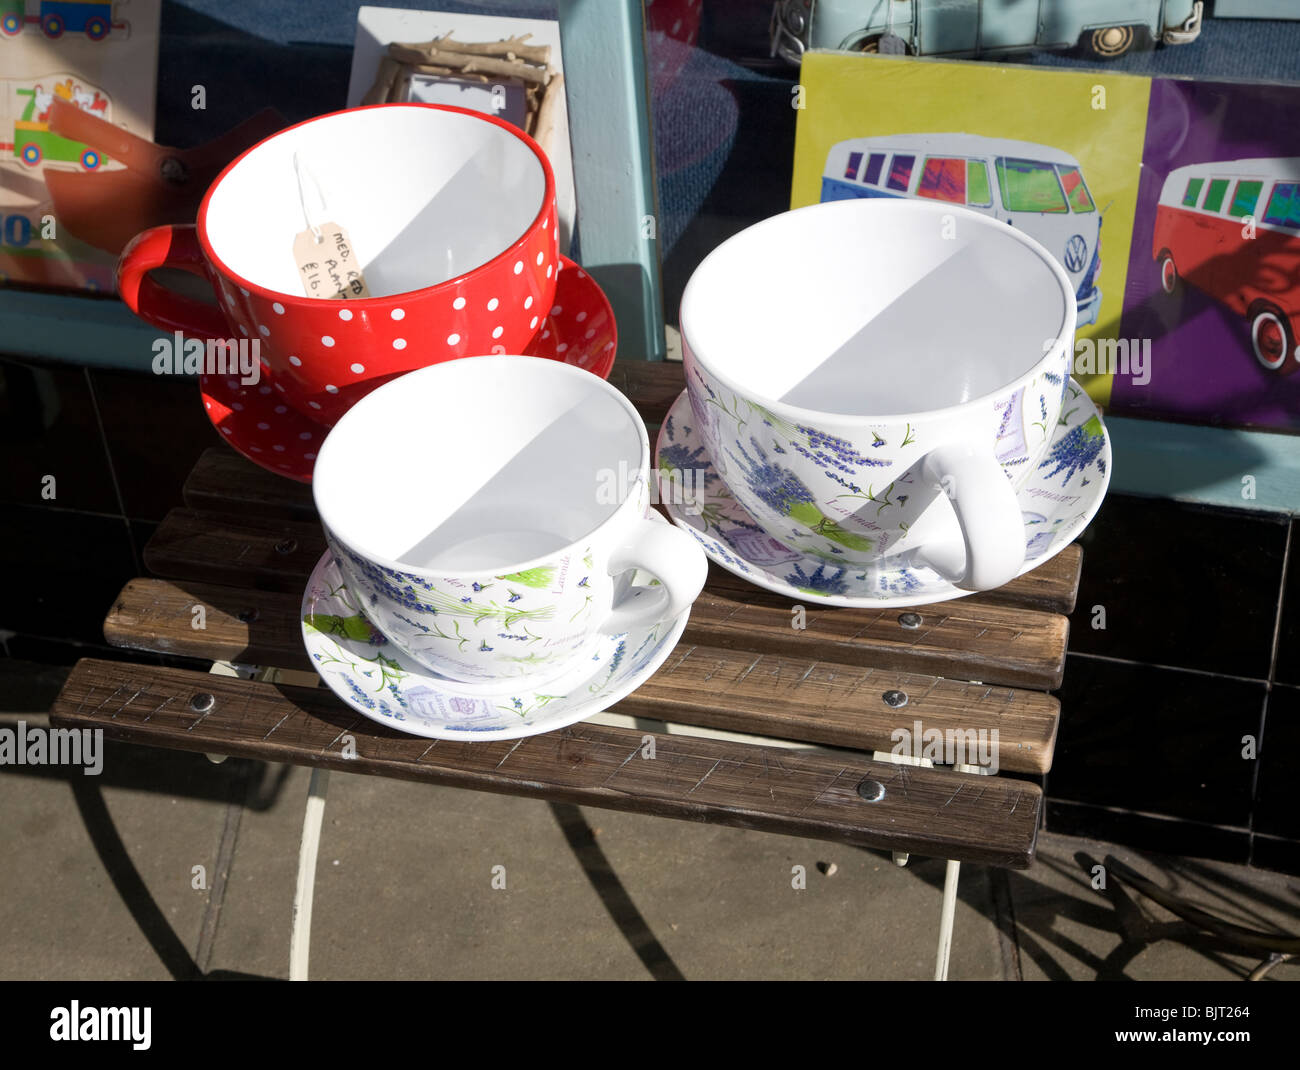 Giant cups and saucers - Stock Image